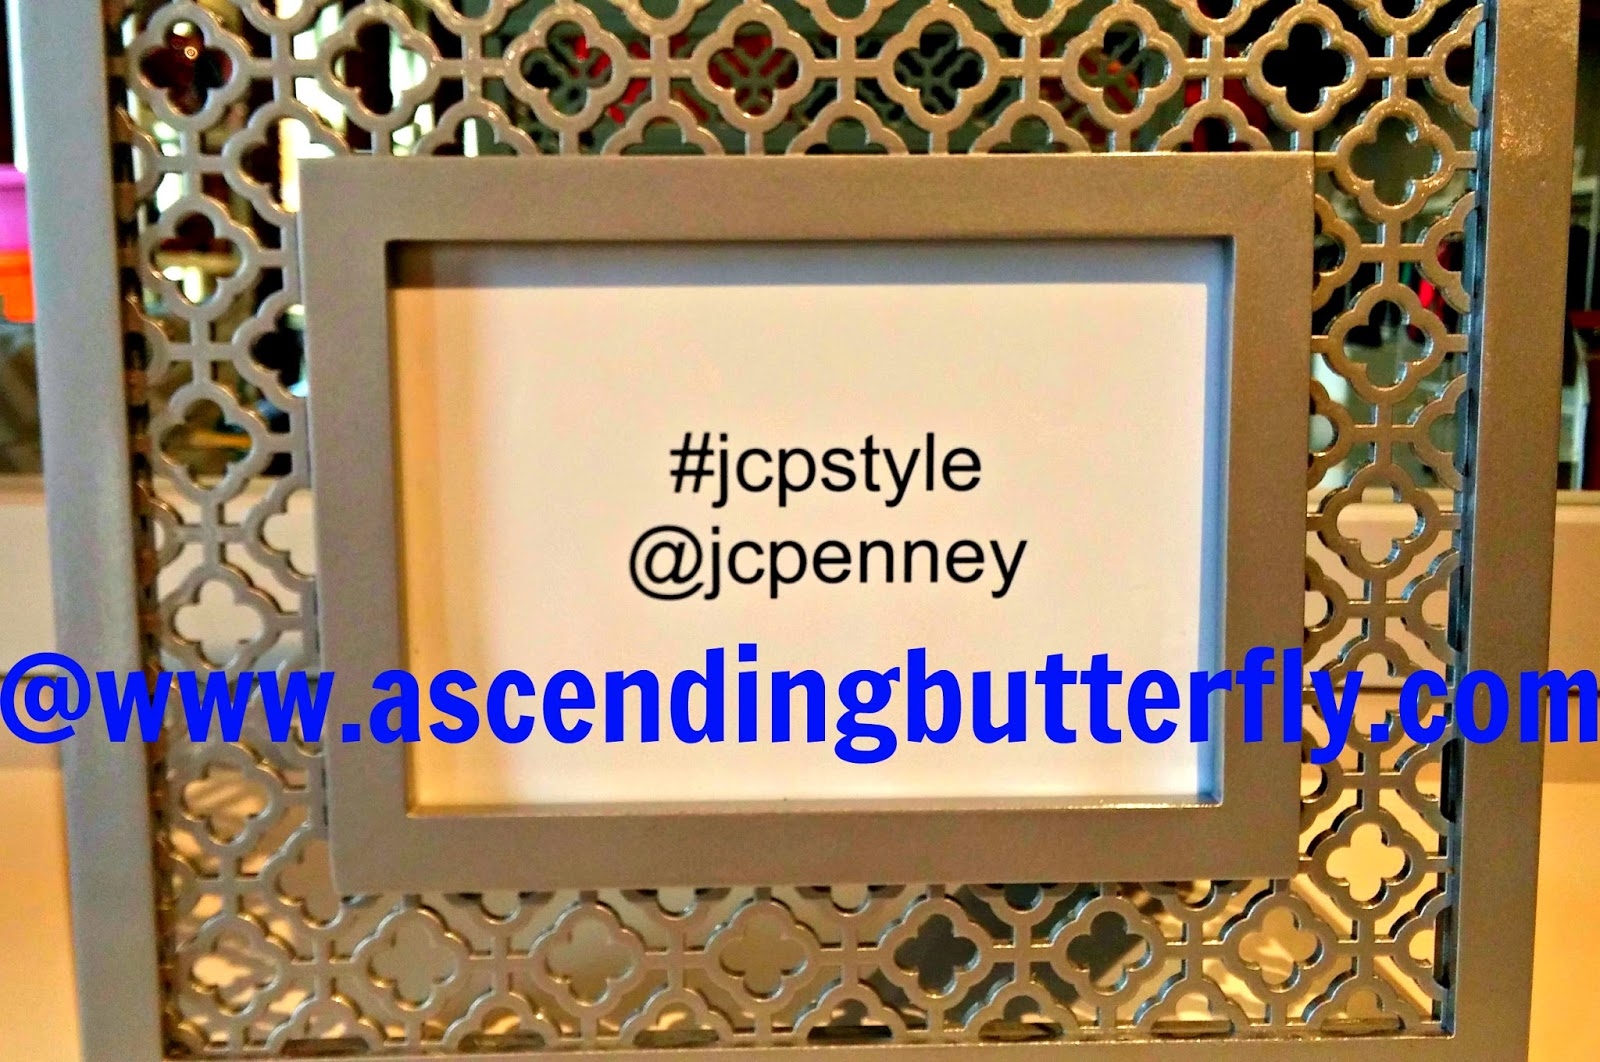 @jcpenney #BTS #Fashion #jcpstyle Framed Signage